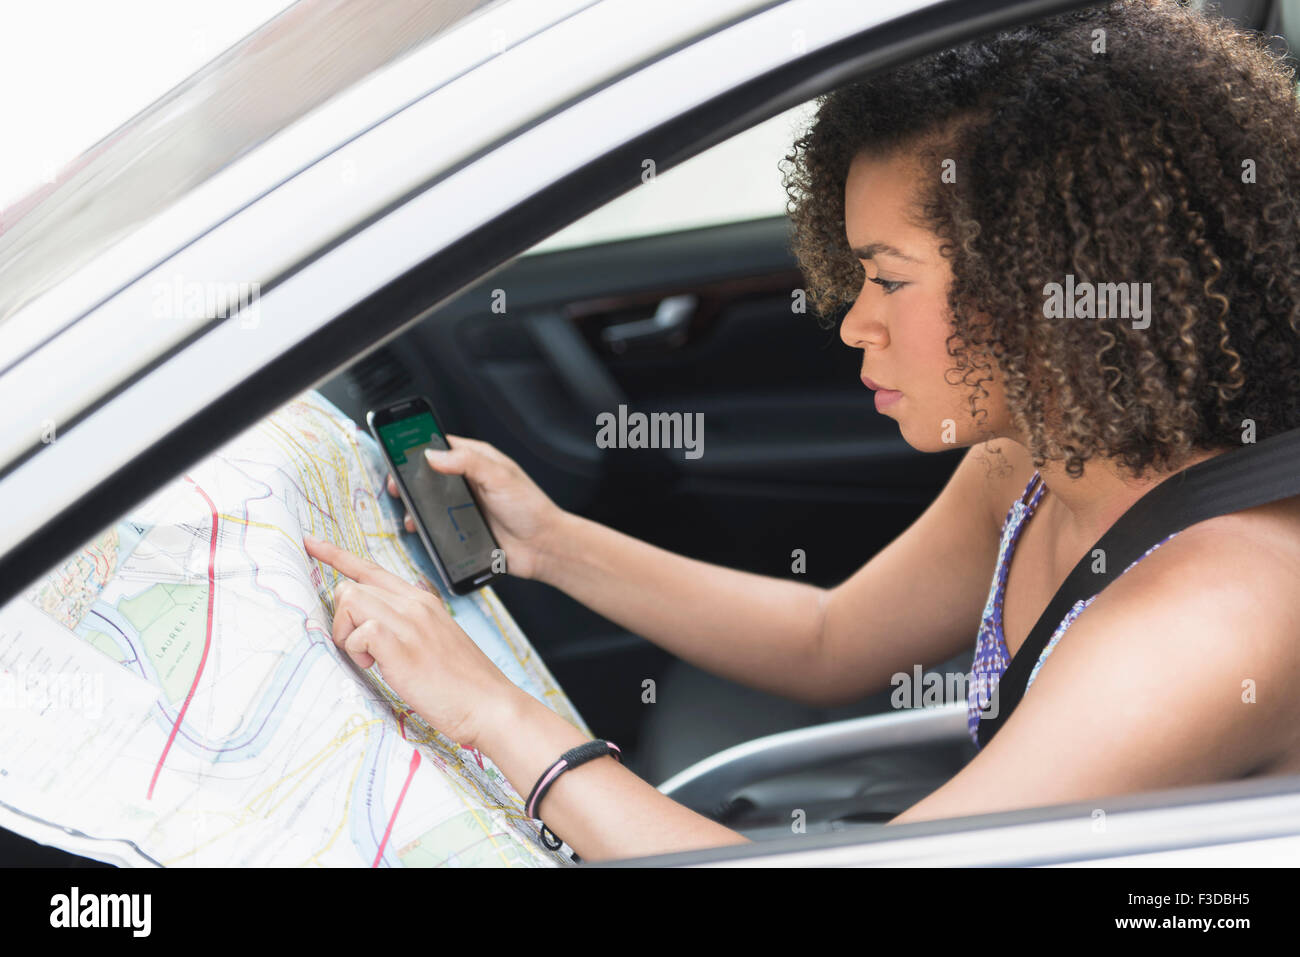 Young woman checking map in car - Stock Image